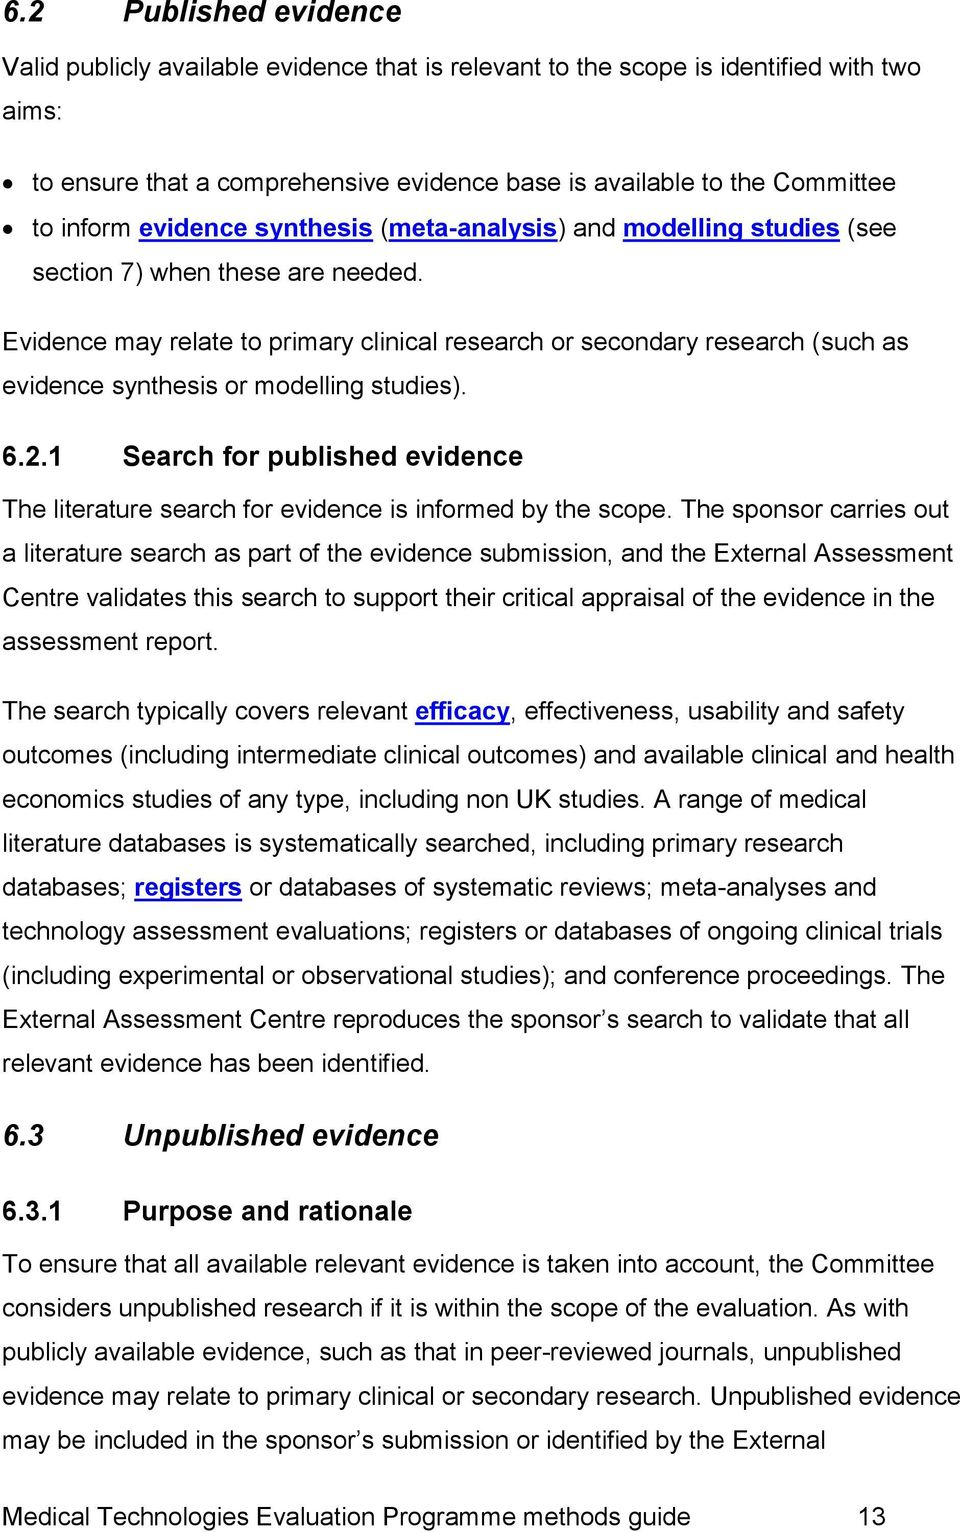 Evidence may relate to primary clinical research or secondary research (such as evidence synthesis or modelling studies). 6.2.